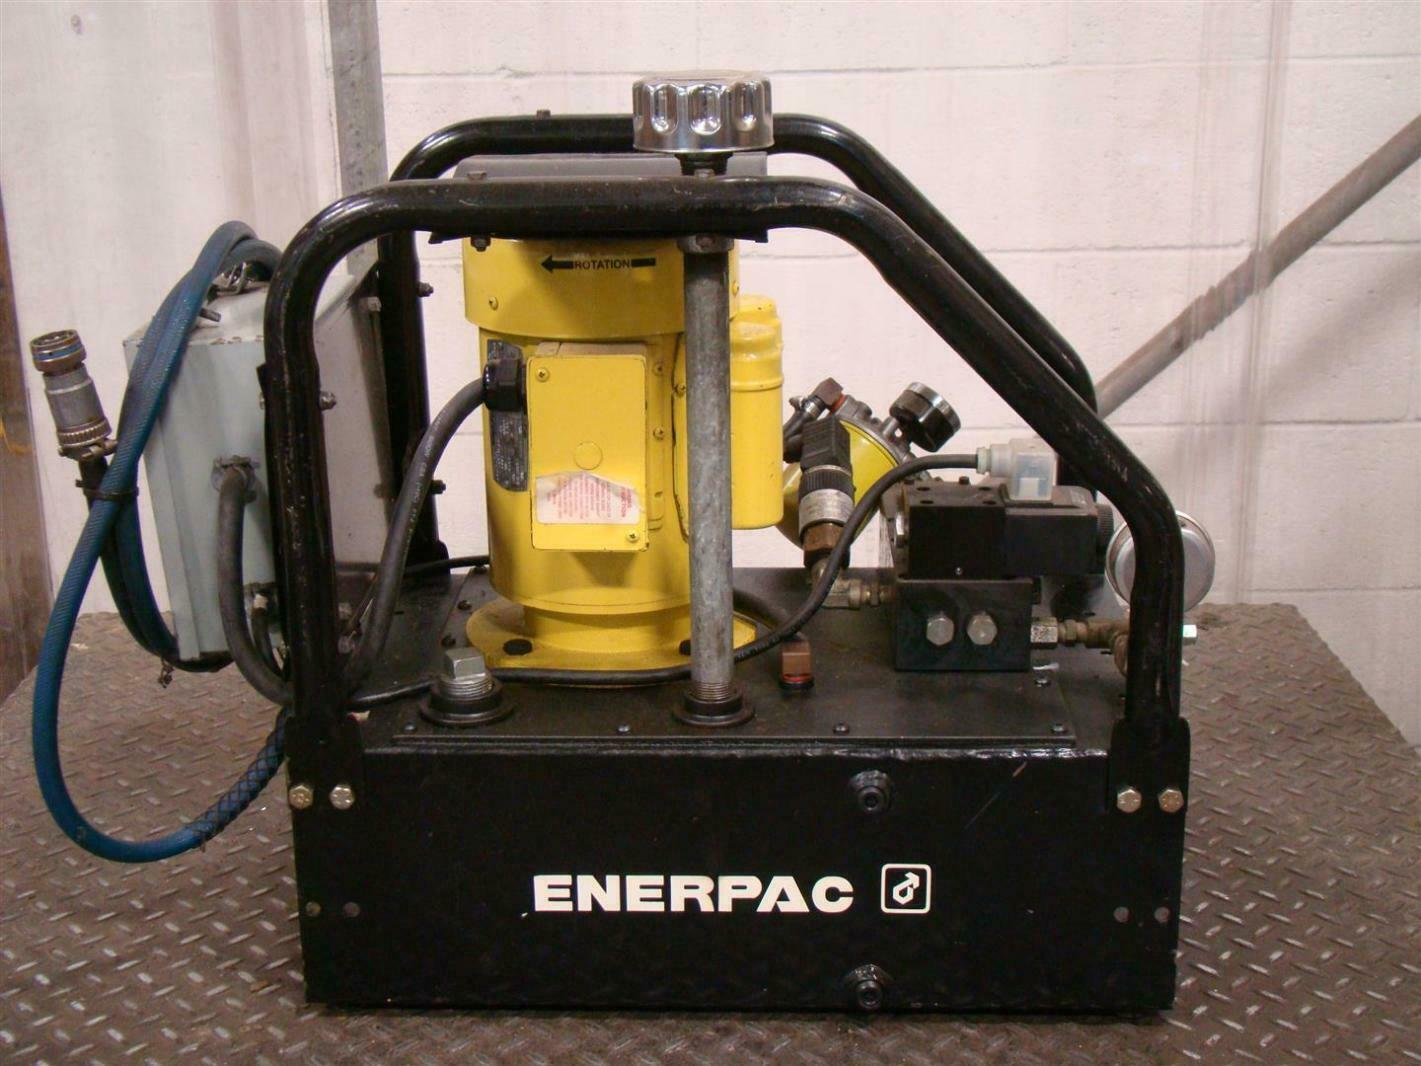 Electric Hydraulic Pump >> Details About Enerpac Electric Hydraulic Pump 5000psi 350bar Vst2210d